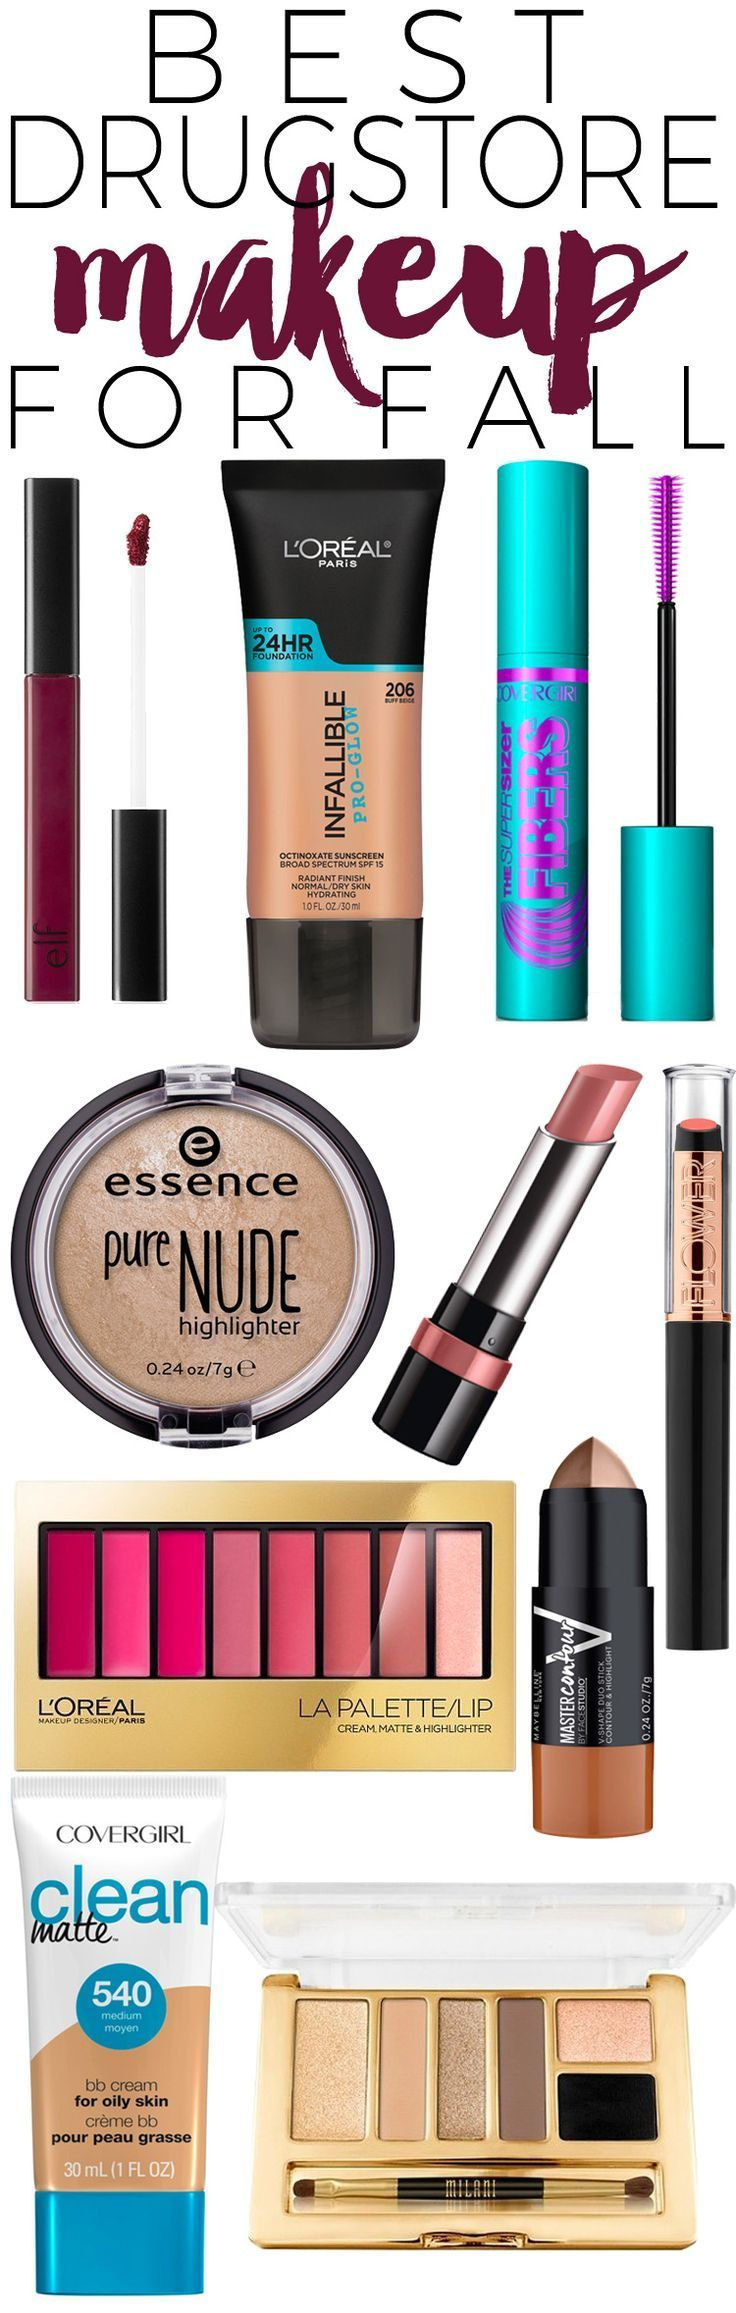 Your favorite drugstores are bursting at the seams with the latest makeup  for fall. If you spend any time browsing the makeup aisle like I do, you  may have noticed a lot of great new seasonal colors, products, and palettes  that you want to try.  Get the best and most flawless skin.